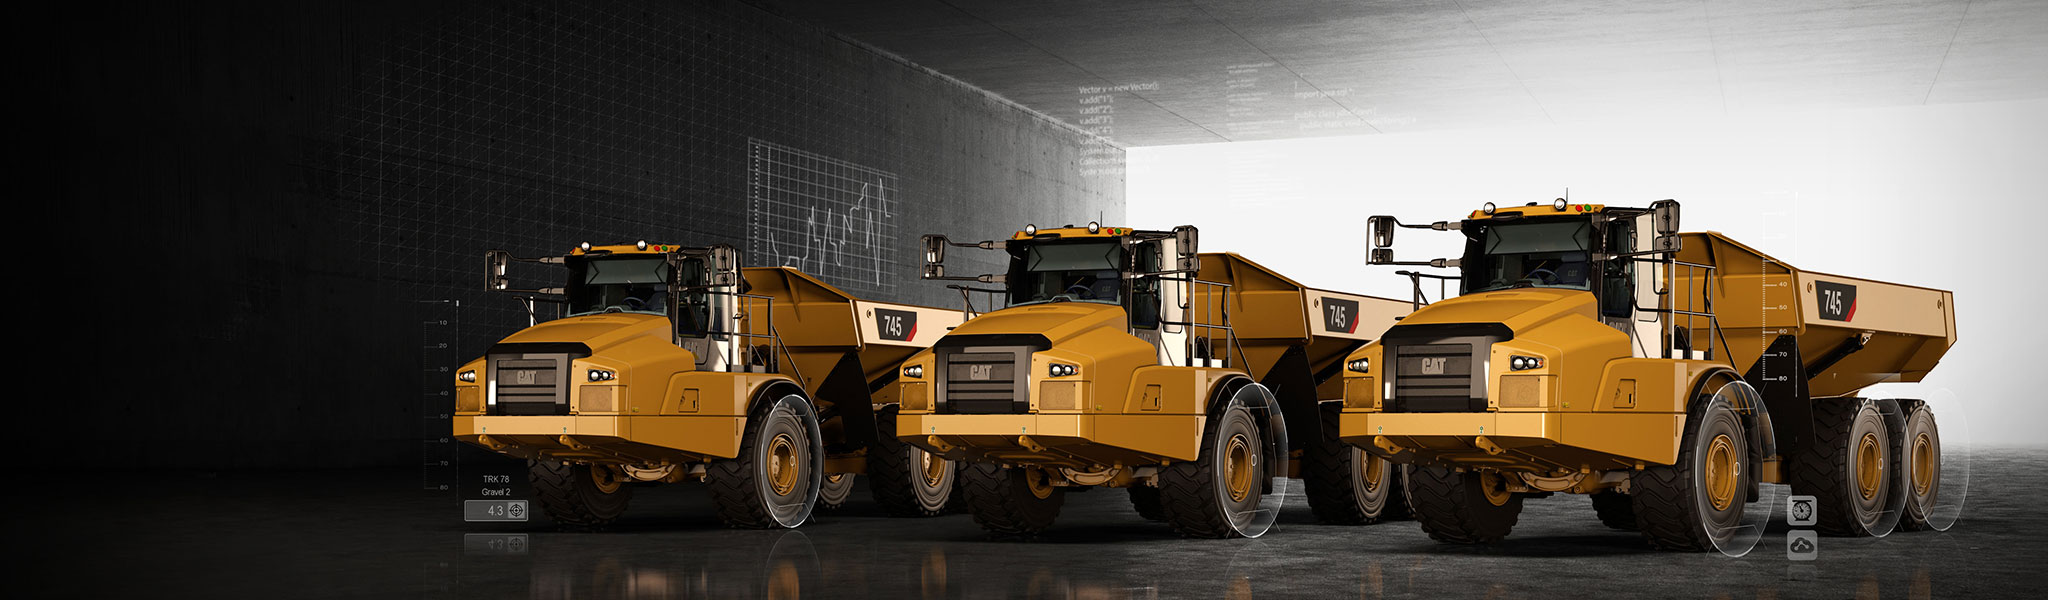 Cat All Day CAT® ARTICULATED TRUCKS: Haul MORE, Move Less